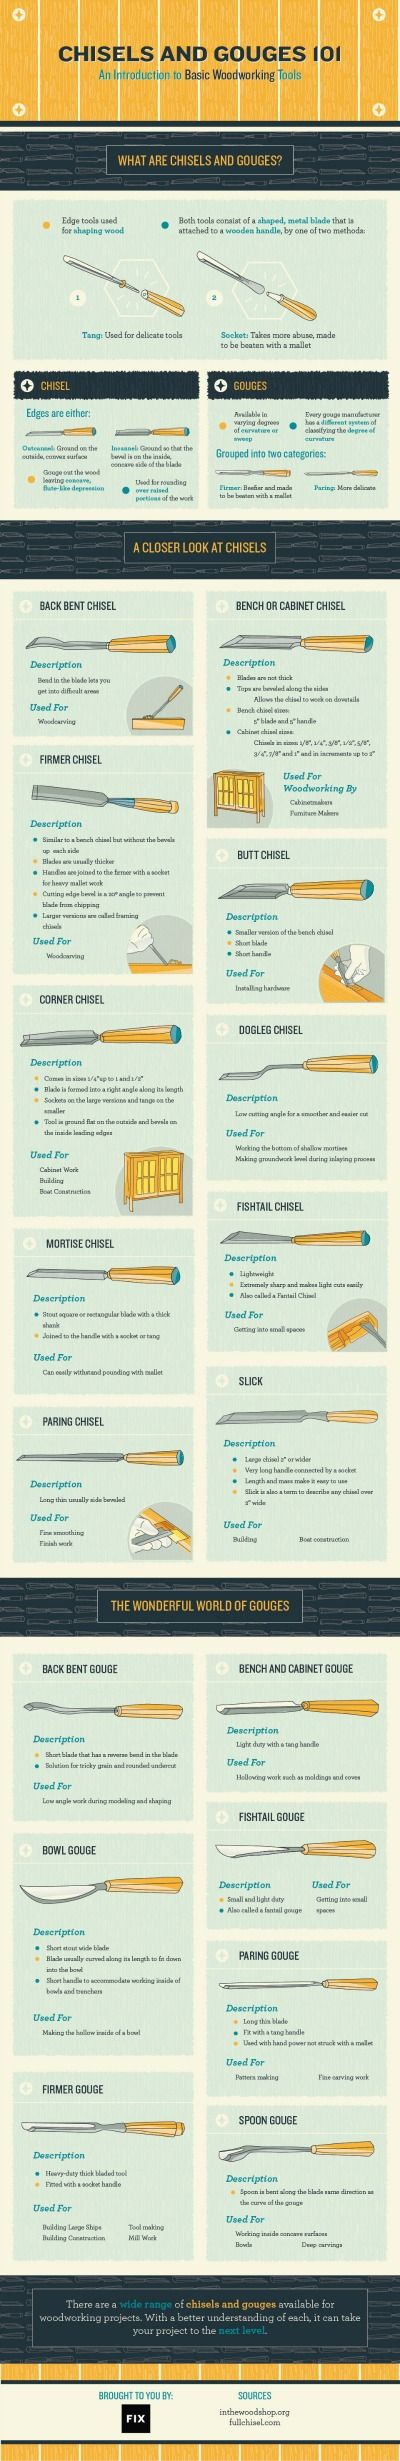 Pequeña introducción a las Gubias de Ebanistería. Introduction to Basic Woodworking Tools Infographic - Tipsaholic